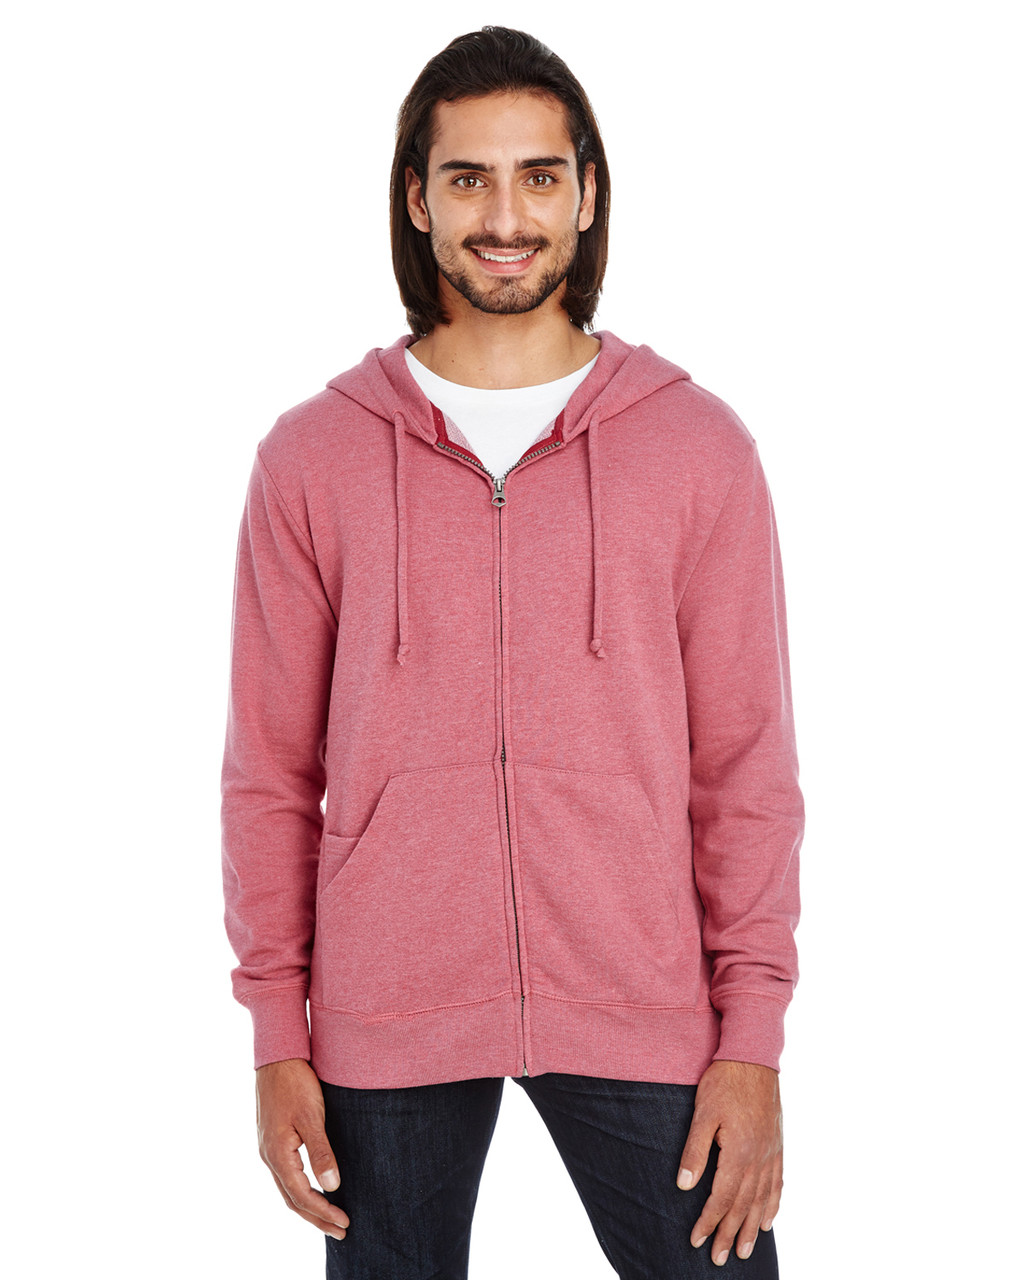 Cardinal Heather - 321Z Threadfast Unisex Triblend French Terry Full-Zip Sweater   Blankclothing.ca